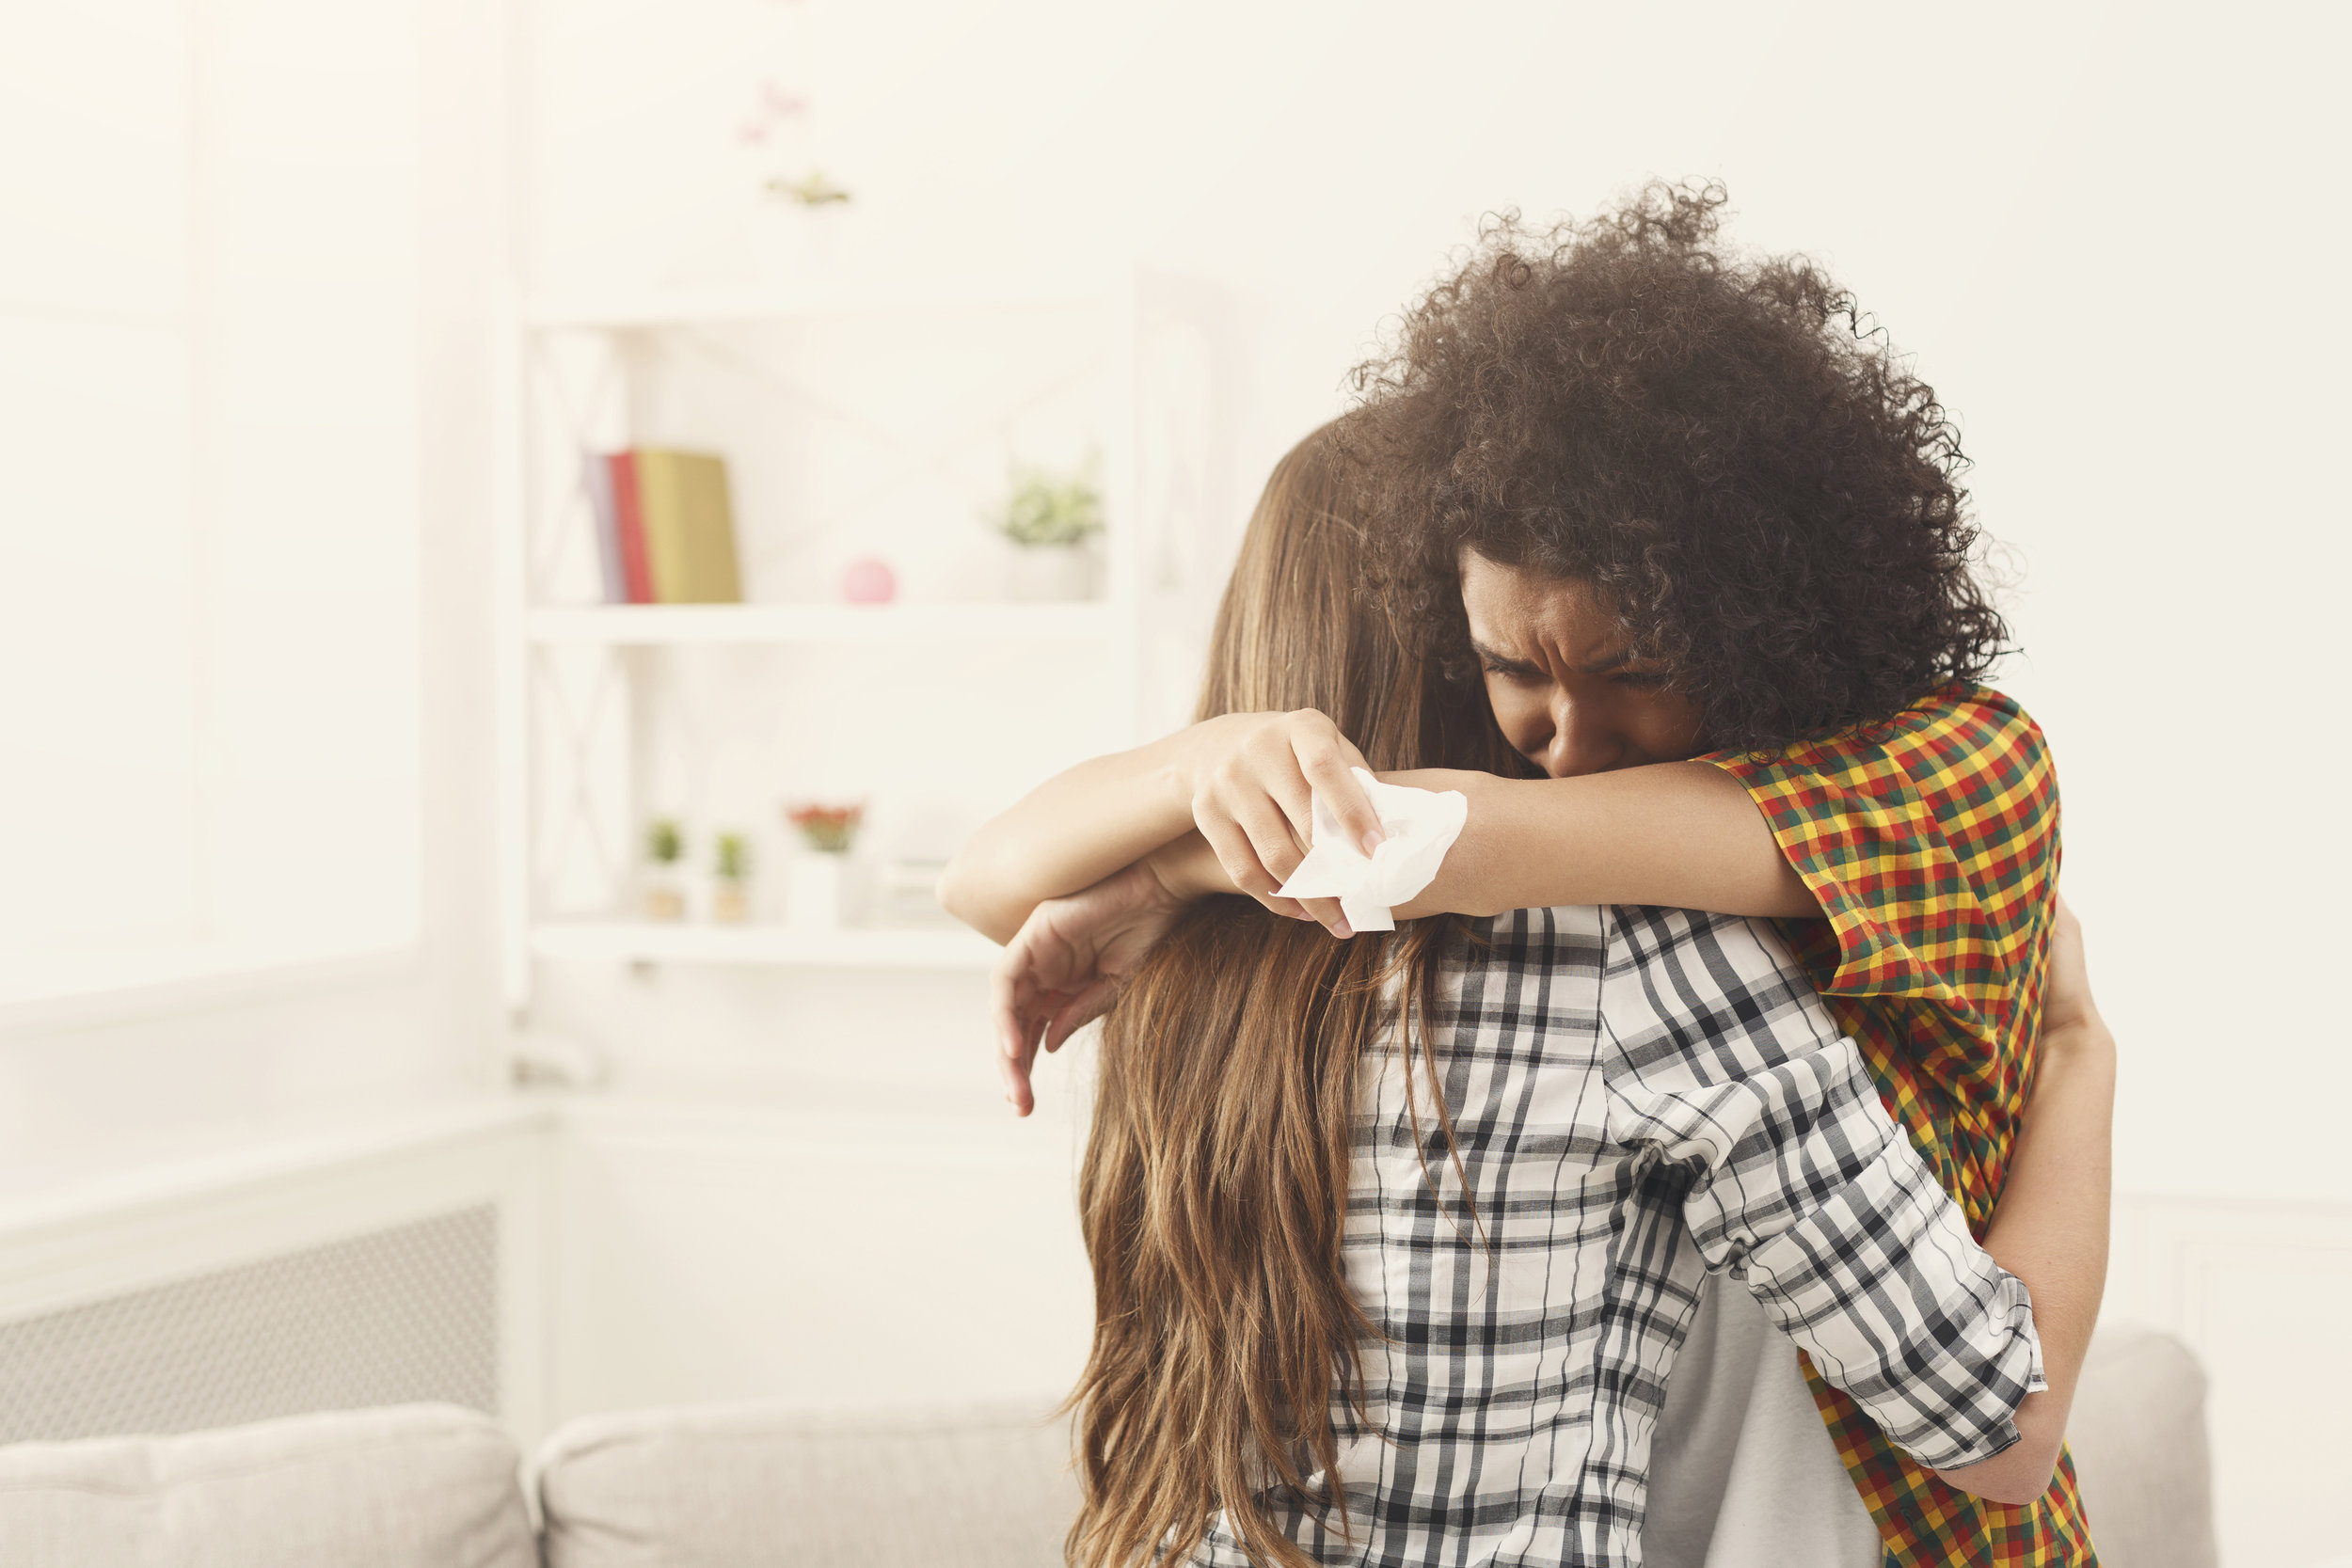 Navigating grief and conversation - A closer look at how to connect with others after the loss of a loved one